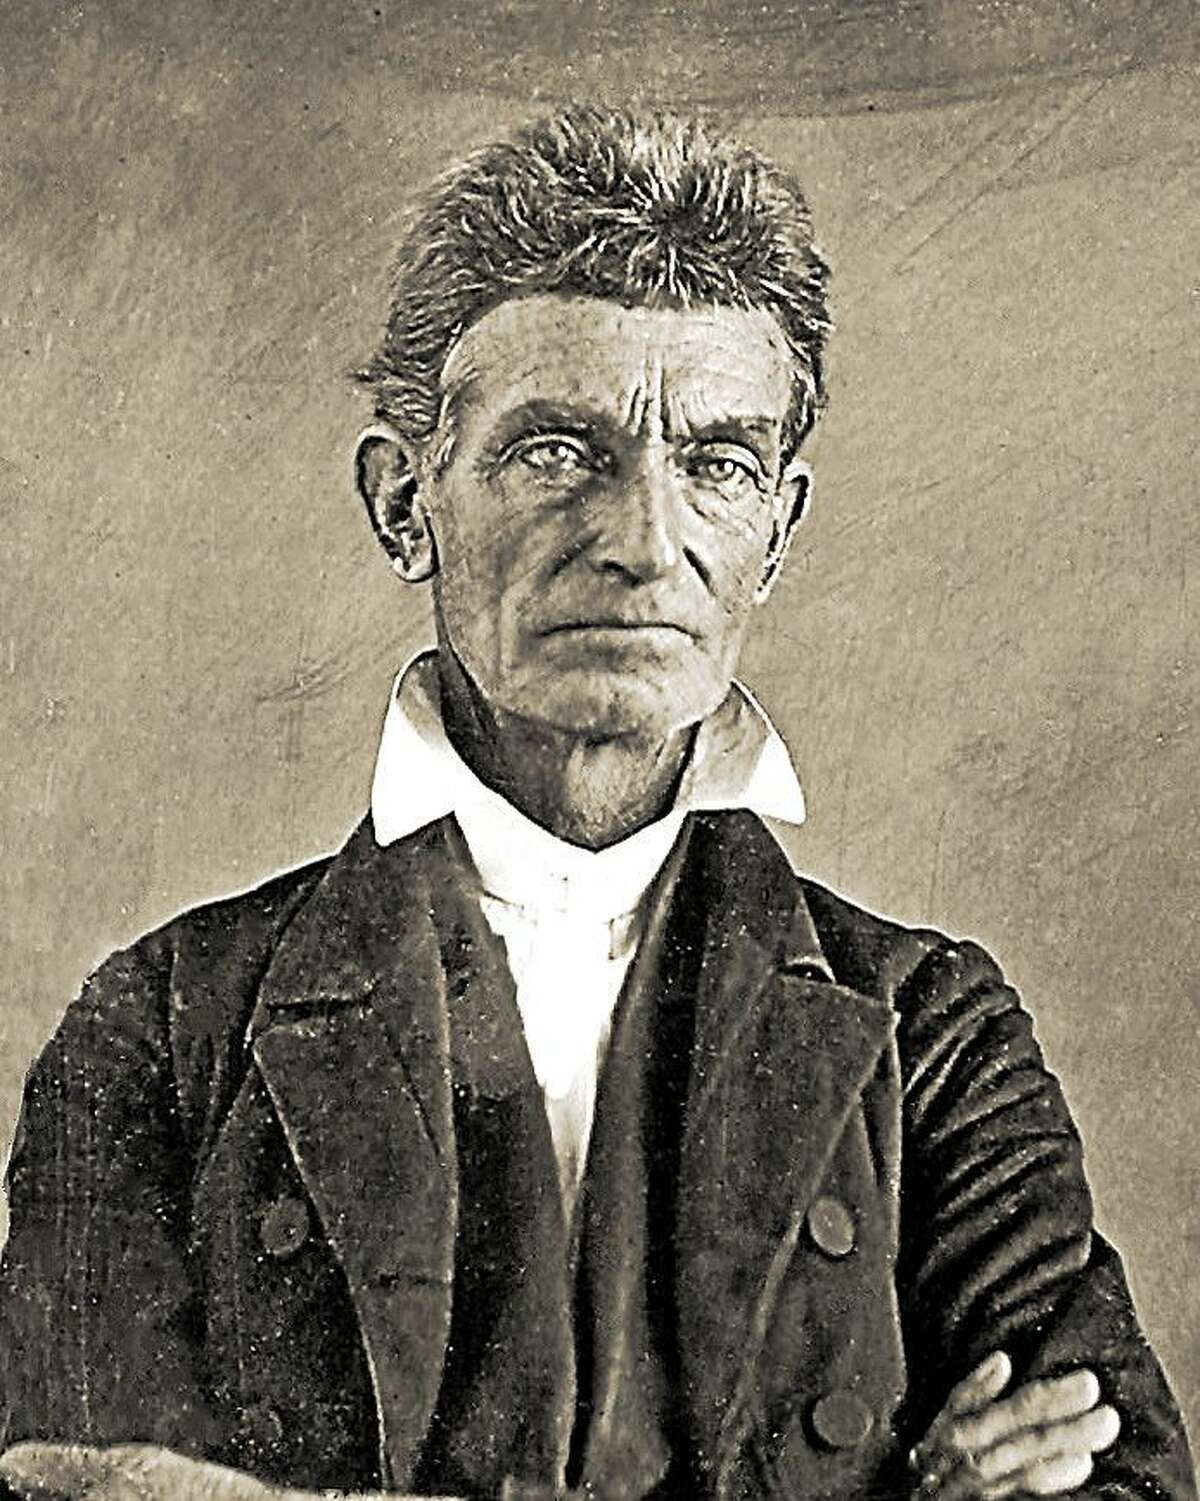 John Brown, who made his mark as an abolitionist, was born in Torrington and educated in Litchfield.